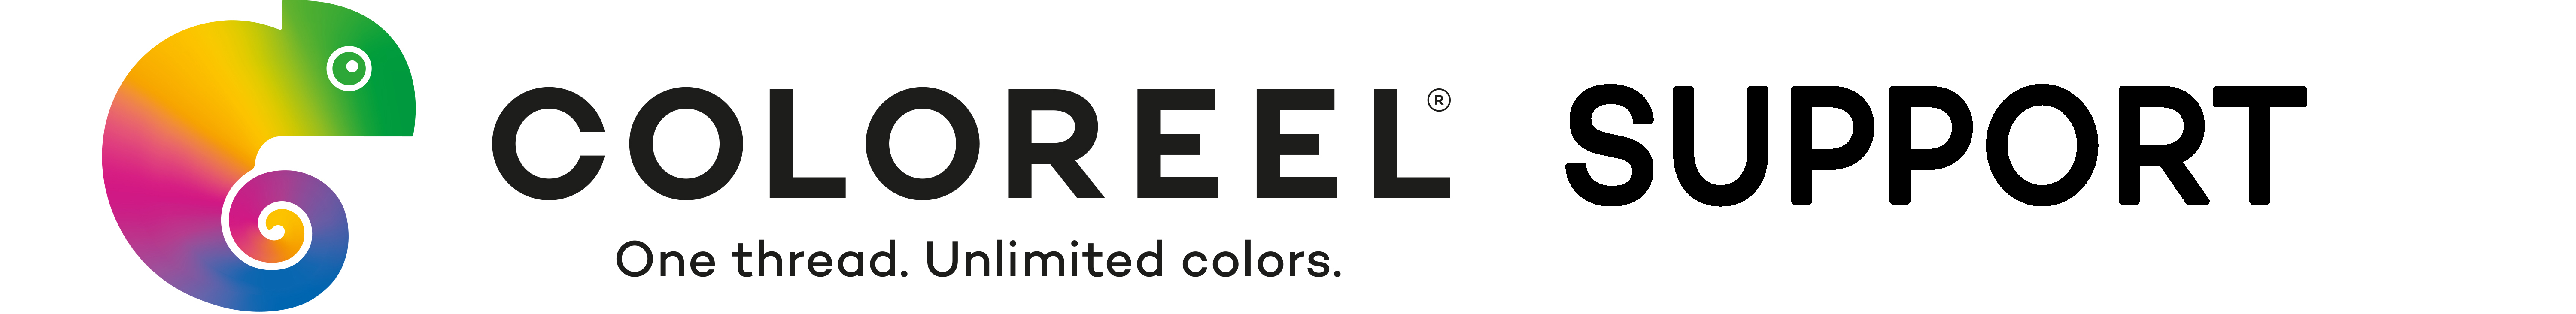 Coloreel Support Help Center home page